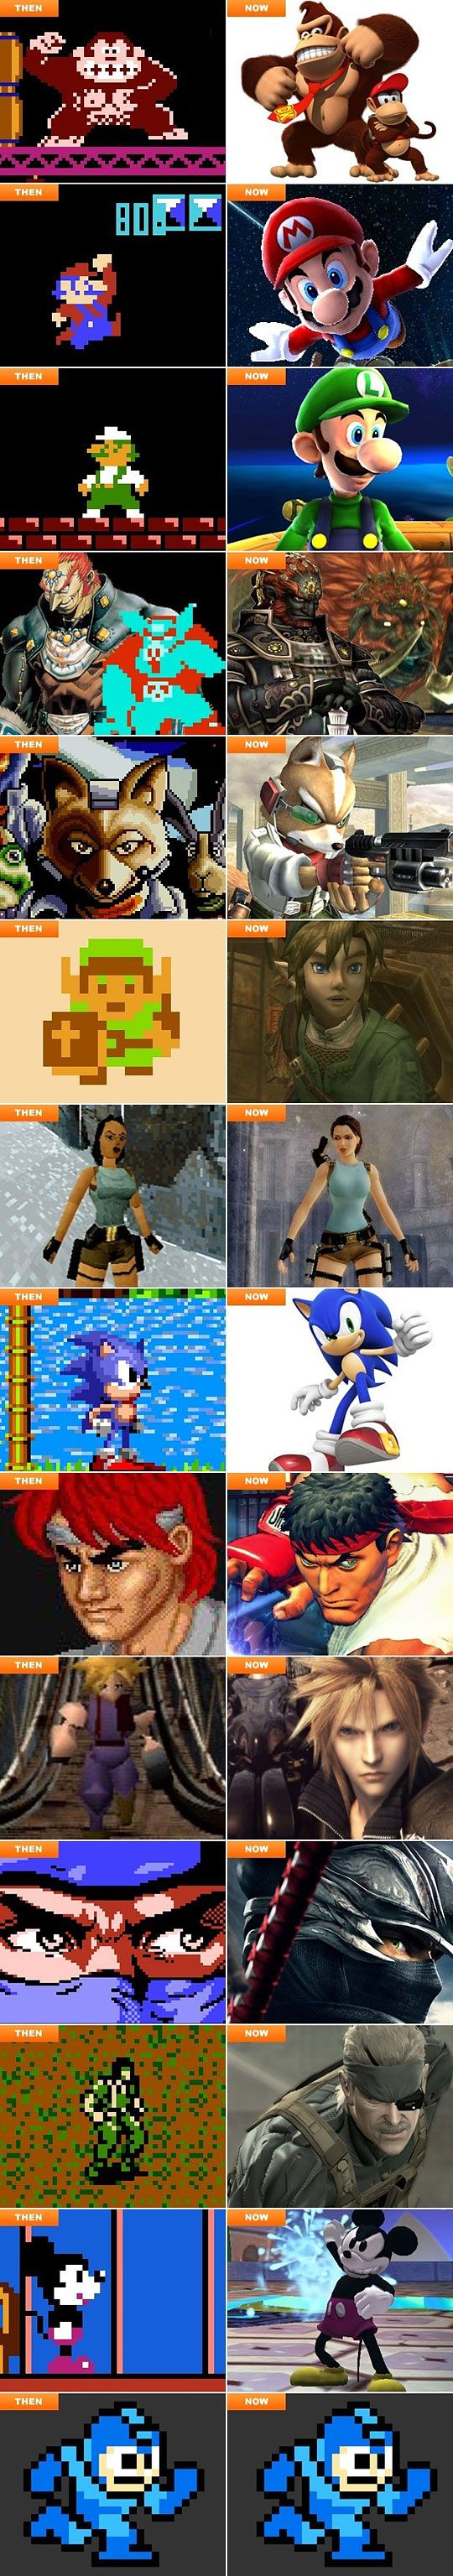 Video game characters then and now. You know that some of these are only a decade apart from each other? Less? FF7 came out in 97. Advent Children came out in... 06', I think? Amazing how far things can come in so little time.